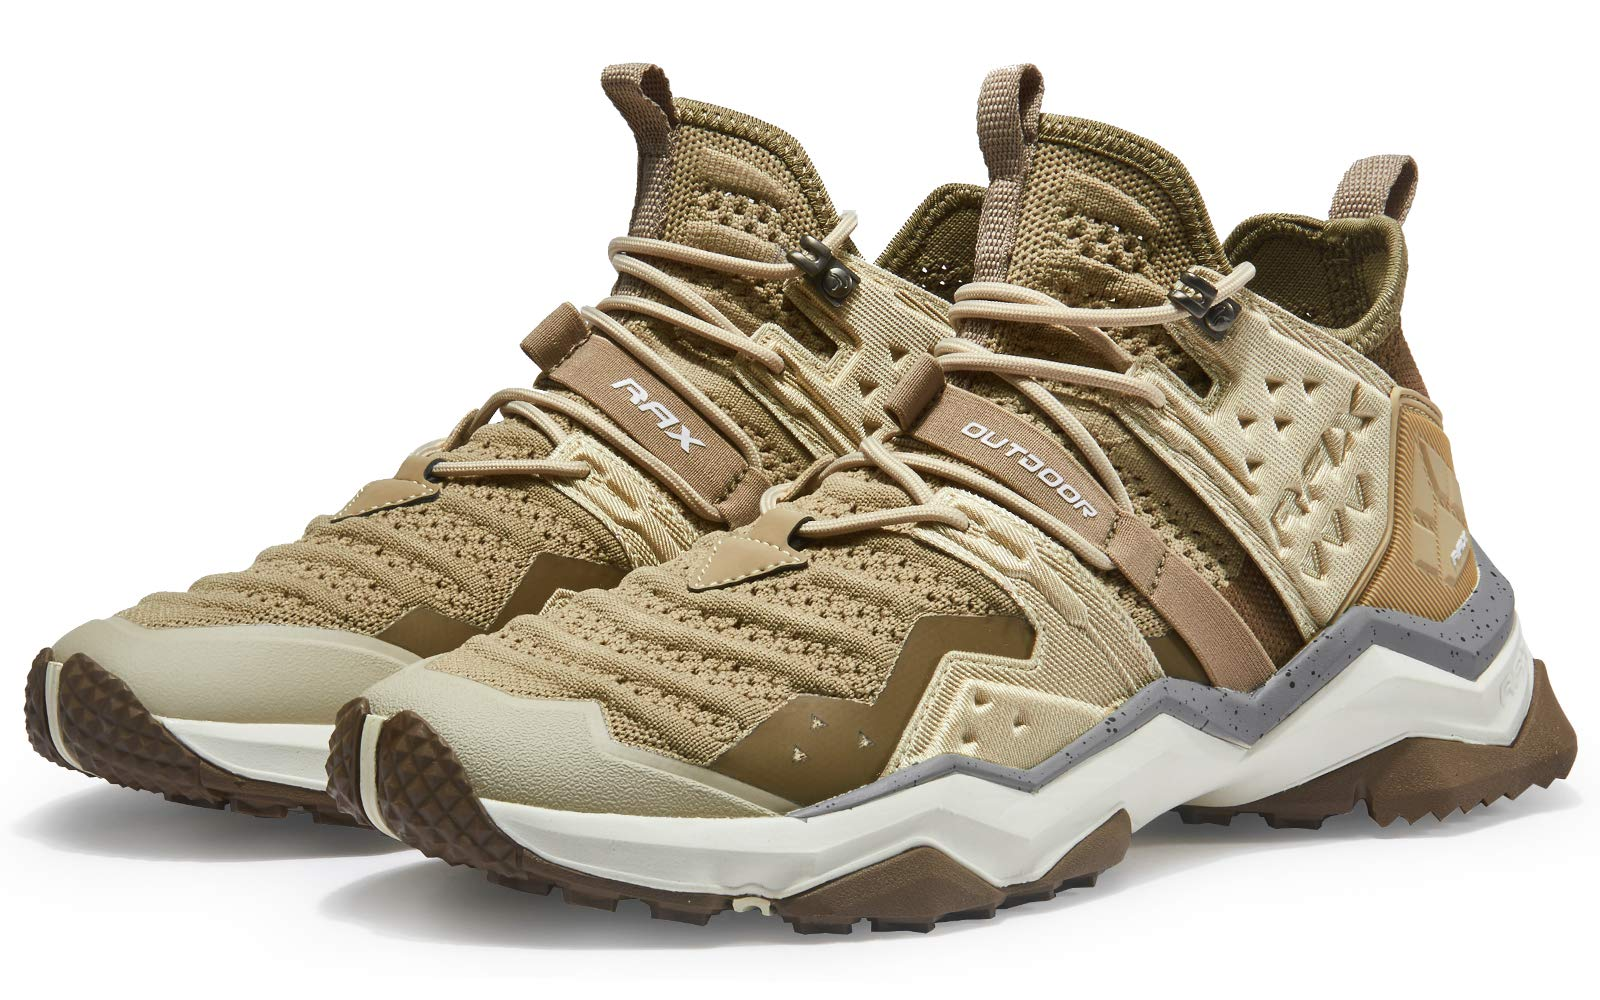 RAX Men's Lightweight Hiking Shoes Camping Backpacking Shoes Outdoor Sneakers